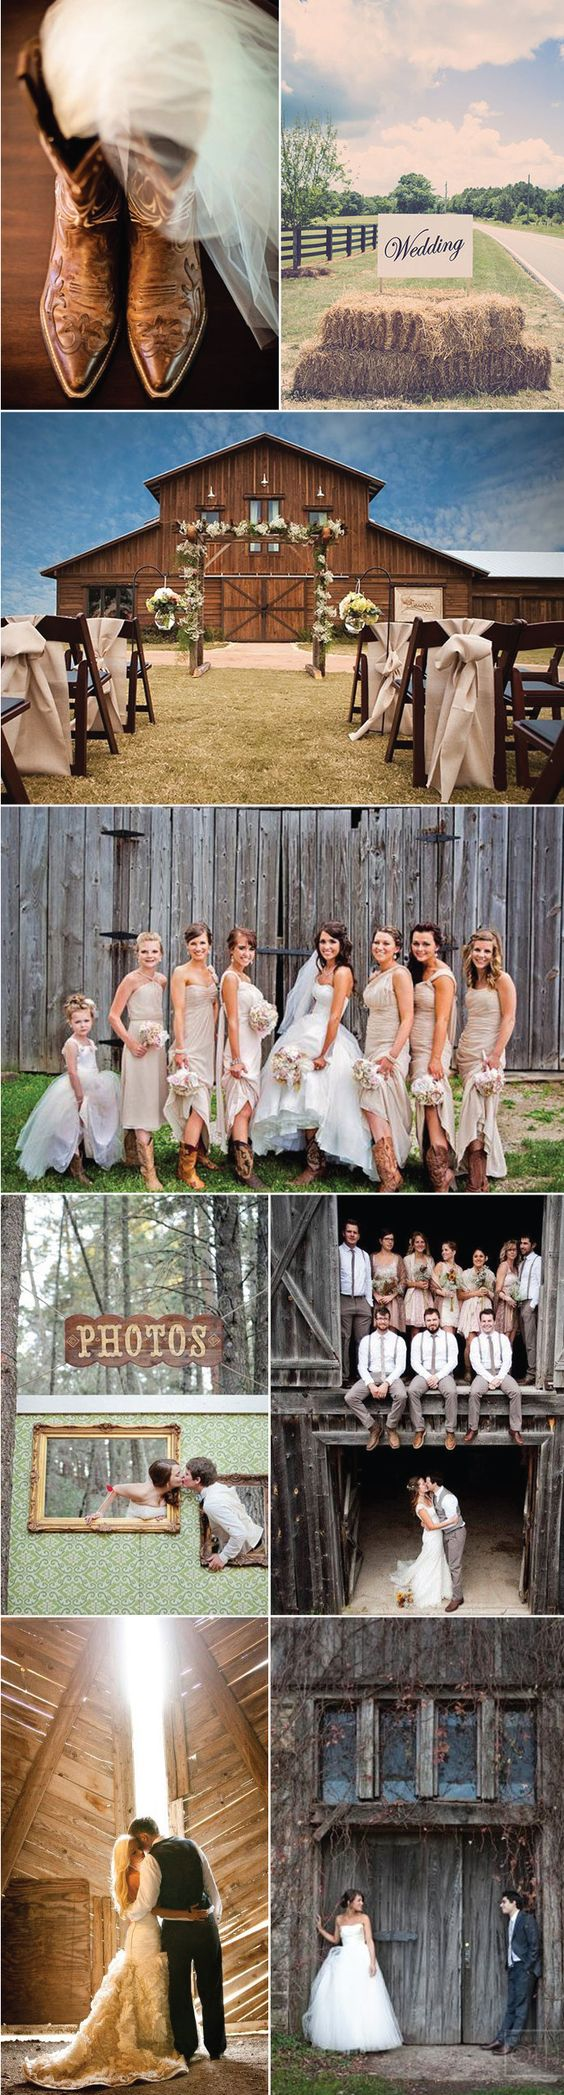 Love all these barn wedding ideas! Super cute. Not to mention the groom and his groomsmen's fashion are all on point. @bowsnties